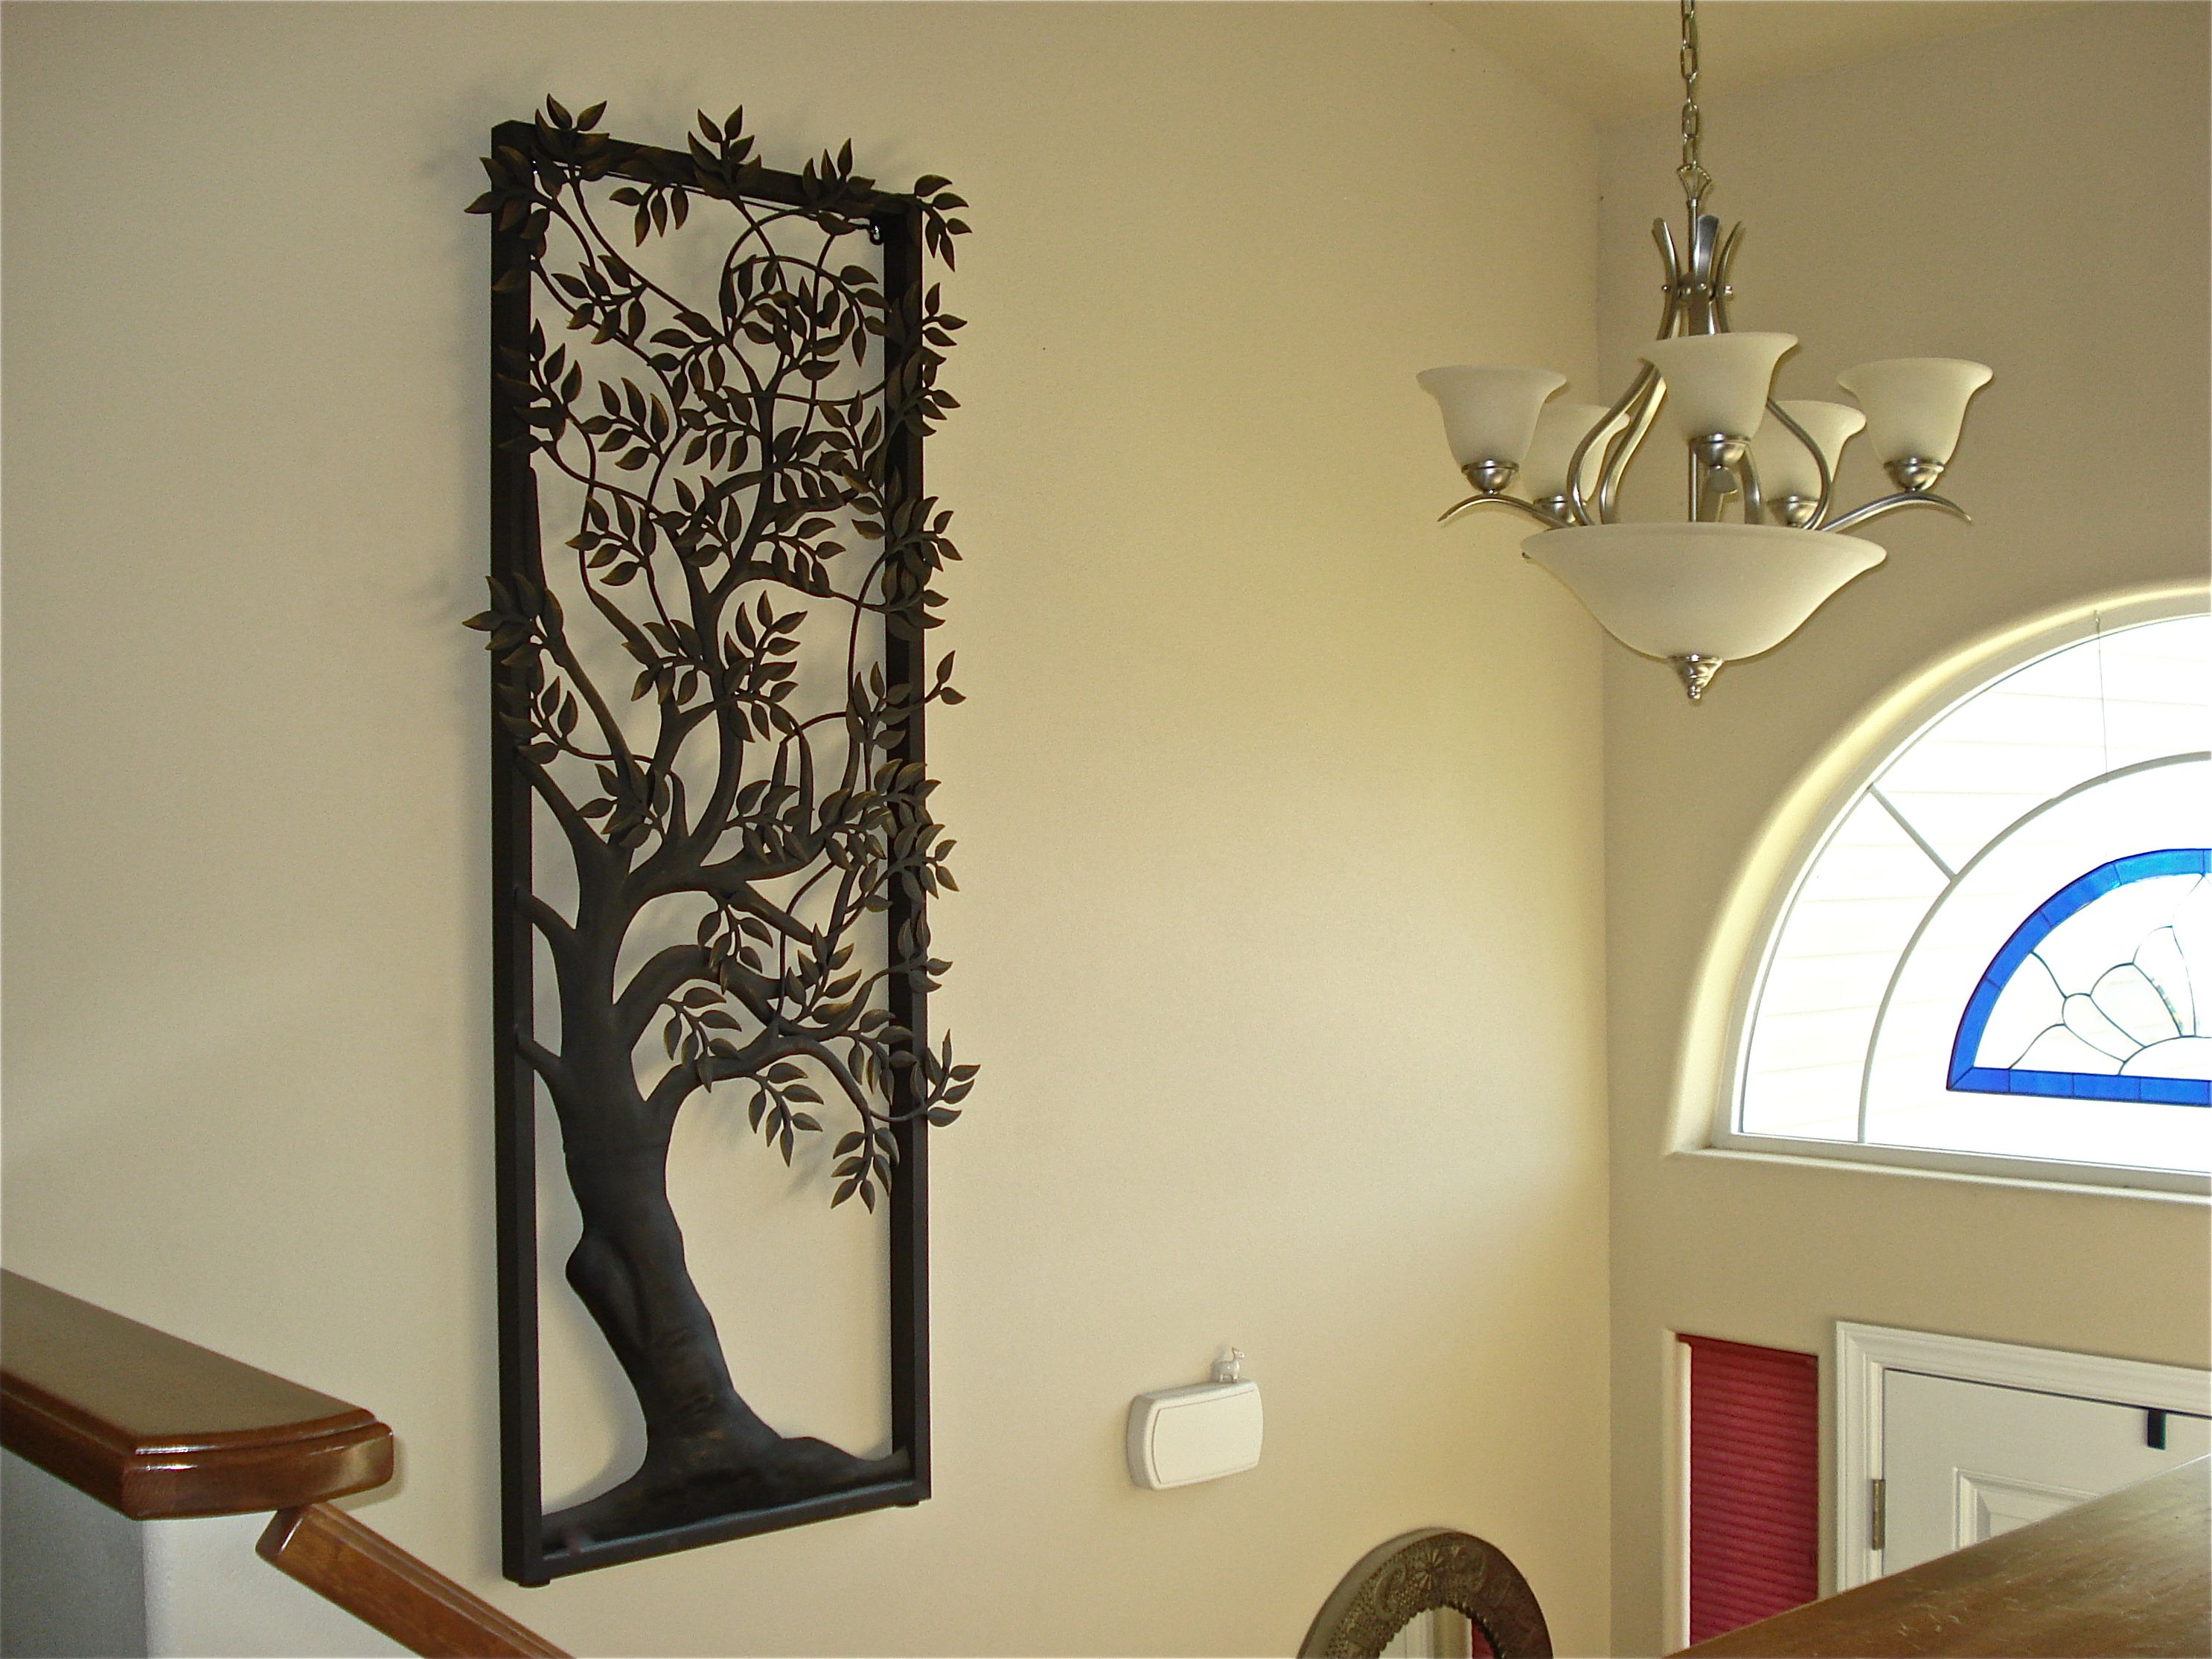 Pier 1 large metal tree art over entry staircase | Metal Trees ...